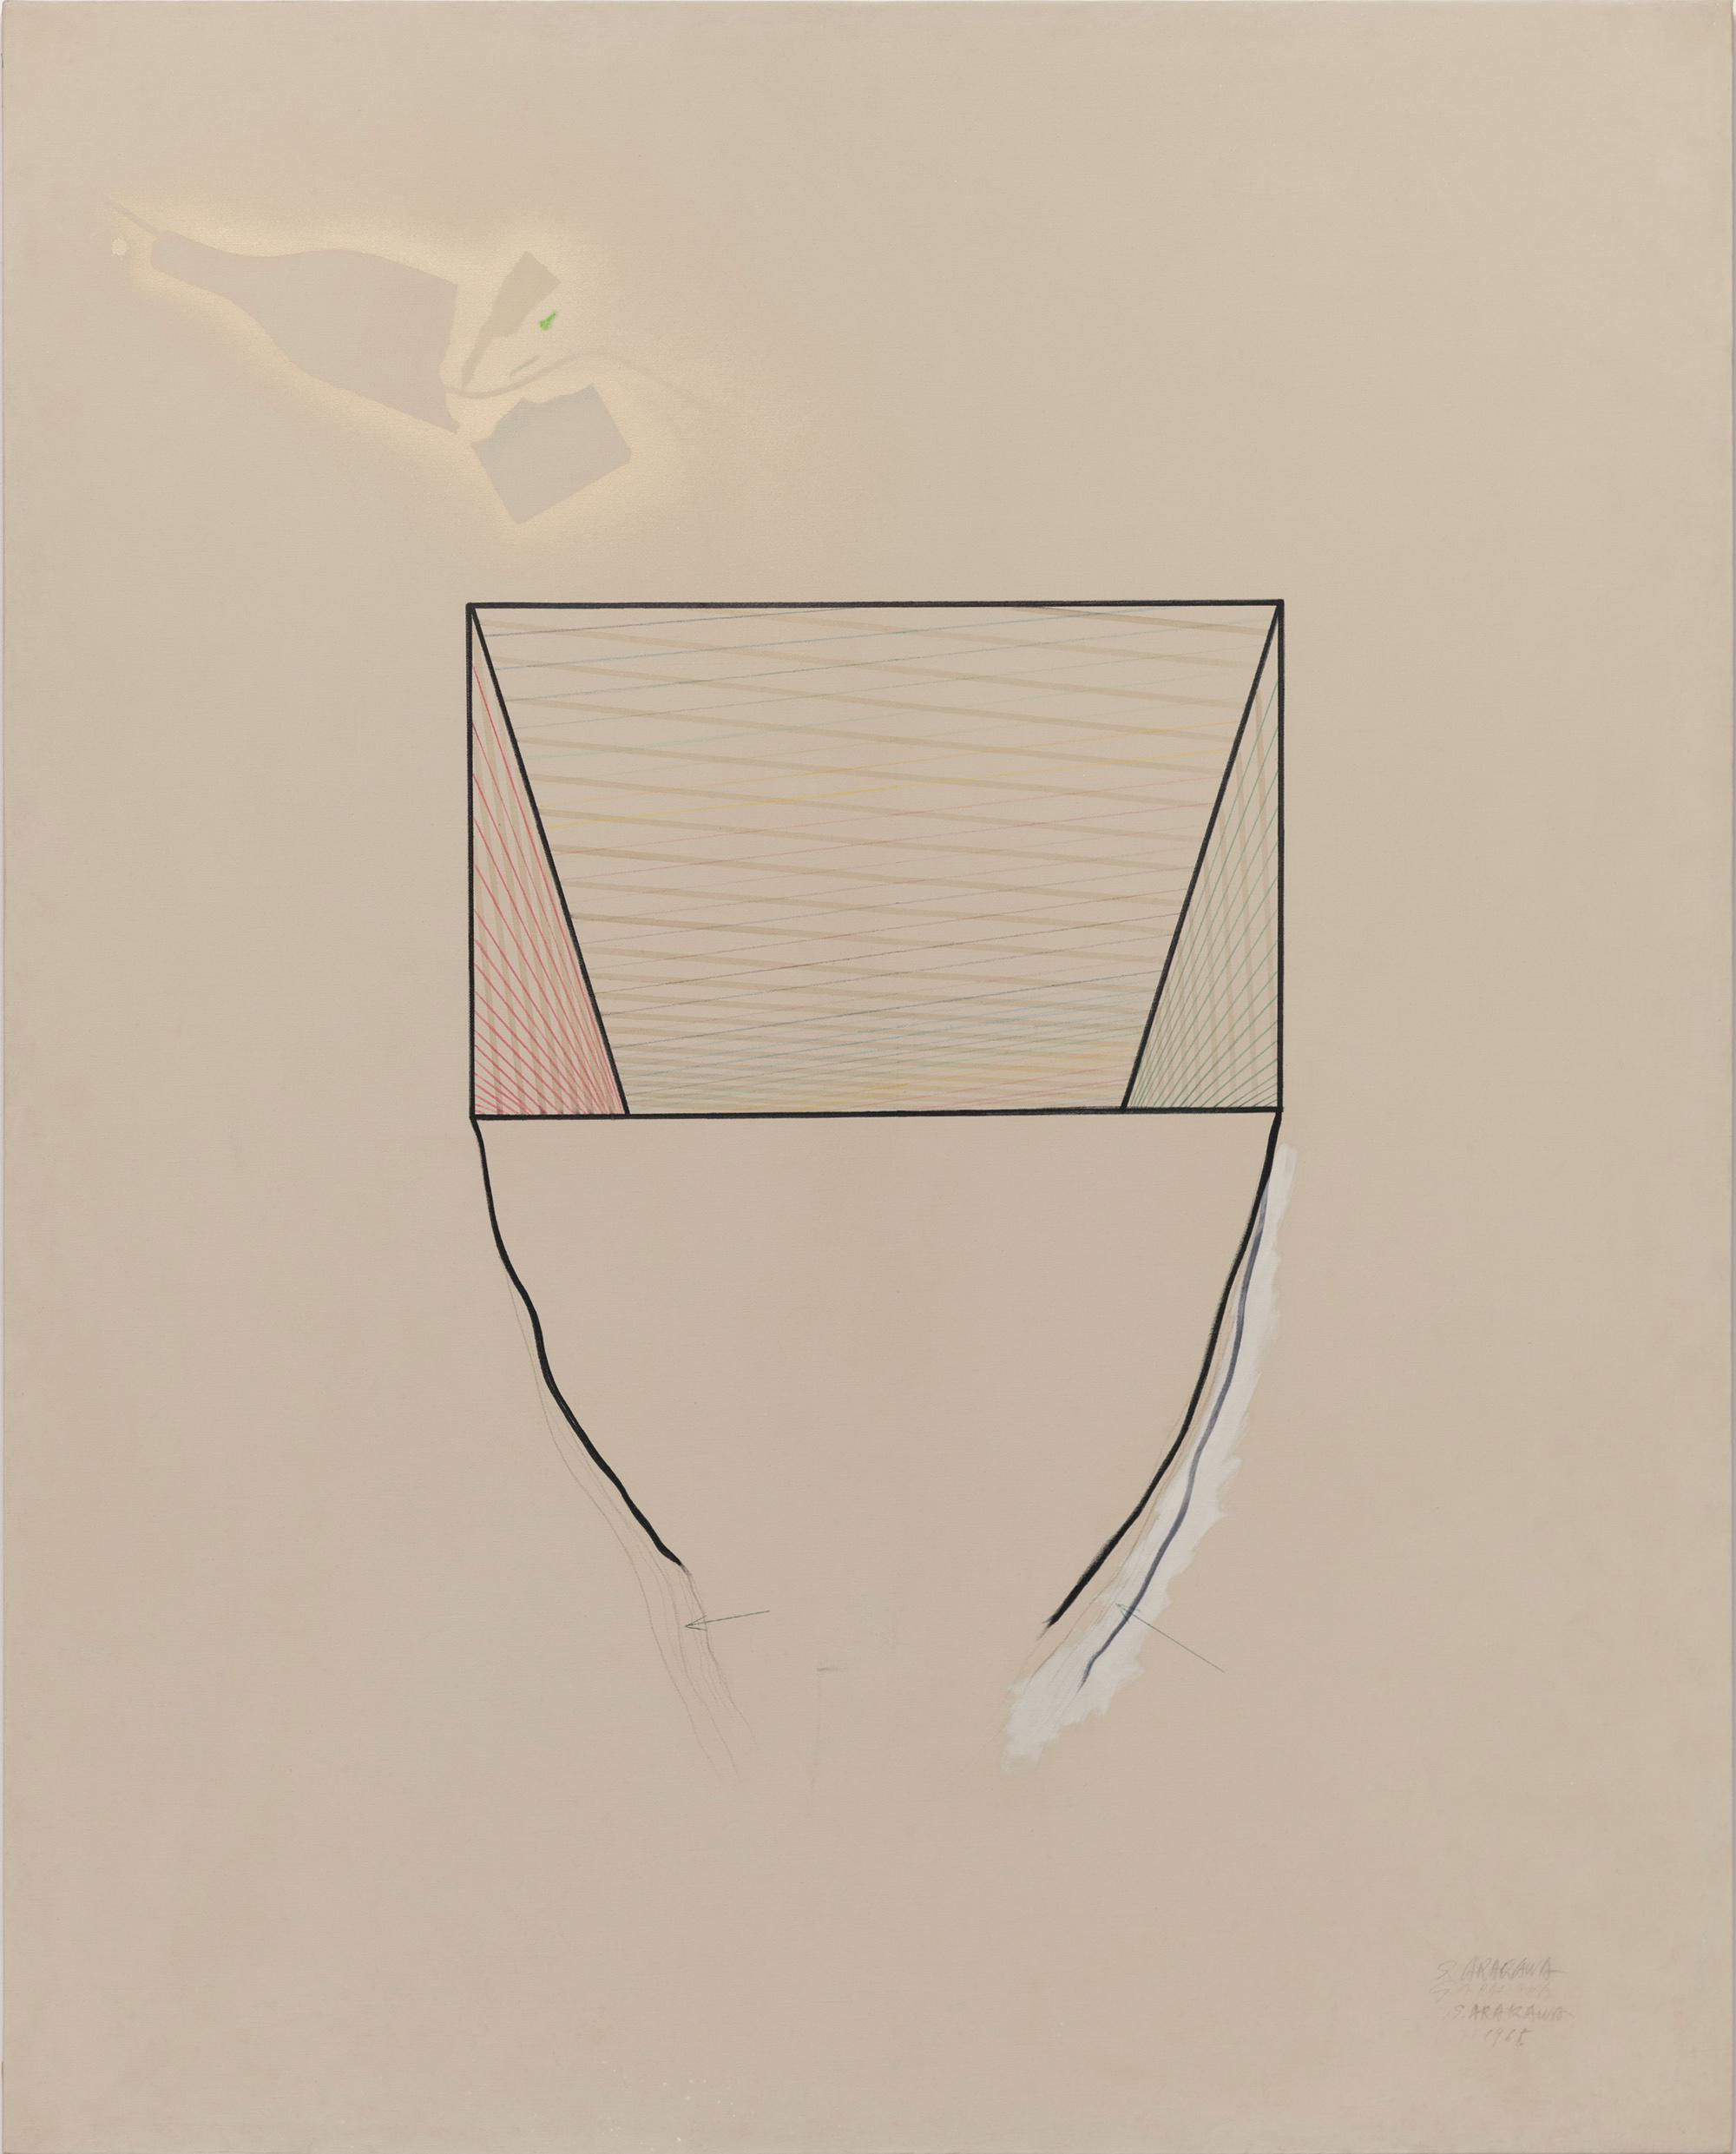 Arakawa, BOTTOMLESS No. 1, 1965, Ink and oil on canvas, 149.7 x 120 x 2.5 cm© 2020 Estate of Madeline Gins. Reproduced with permission of the Estate of Madeline Gins